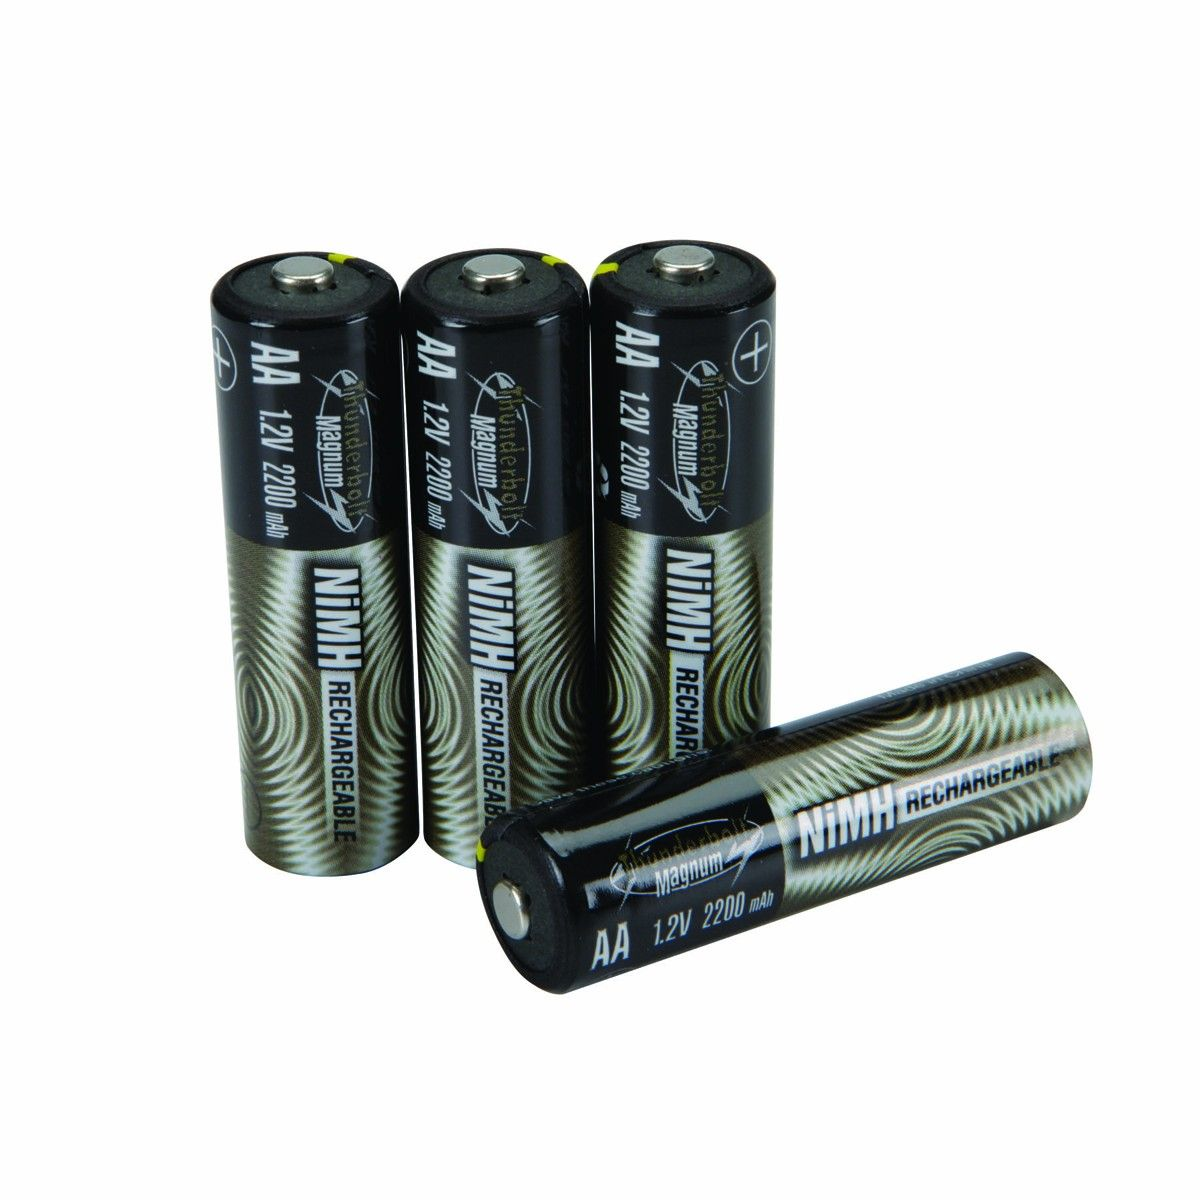 Aa High Capacity Nimh Rechargeable Batteries 4 Pk Nimh Charger Accessories Rechargeable Batteries